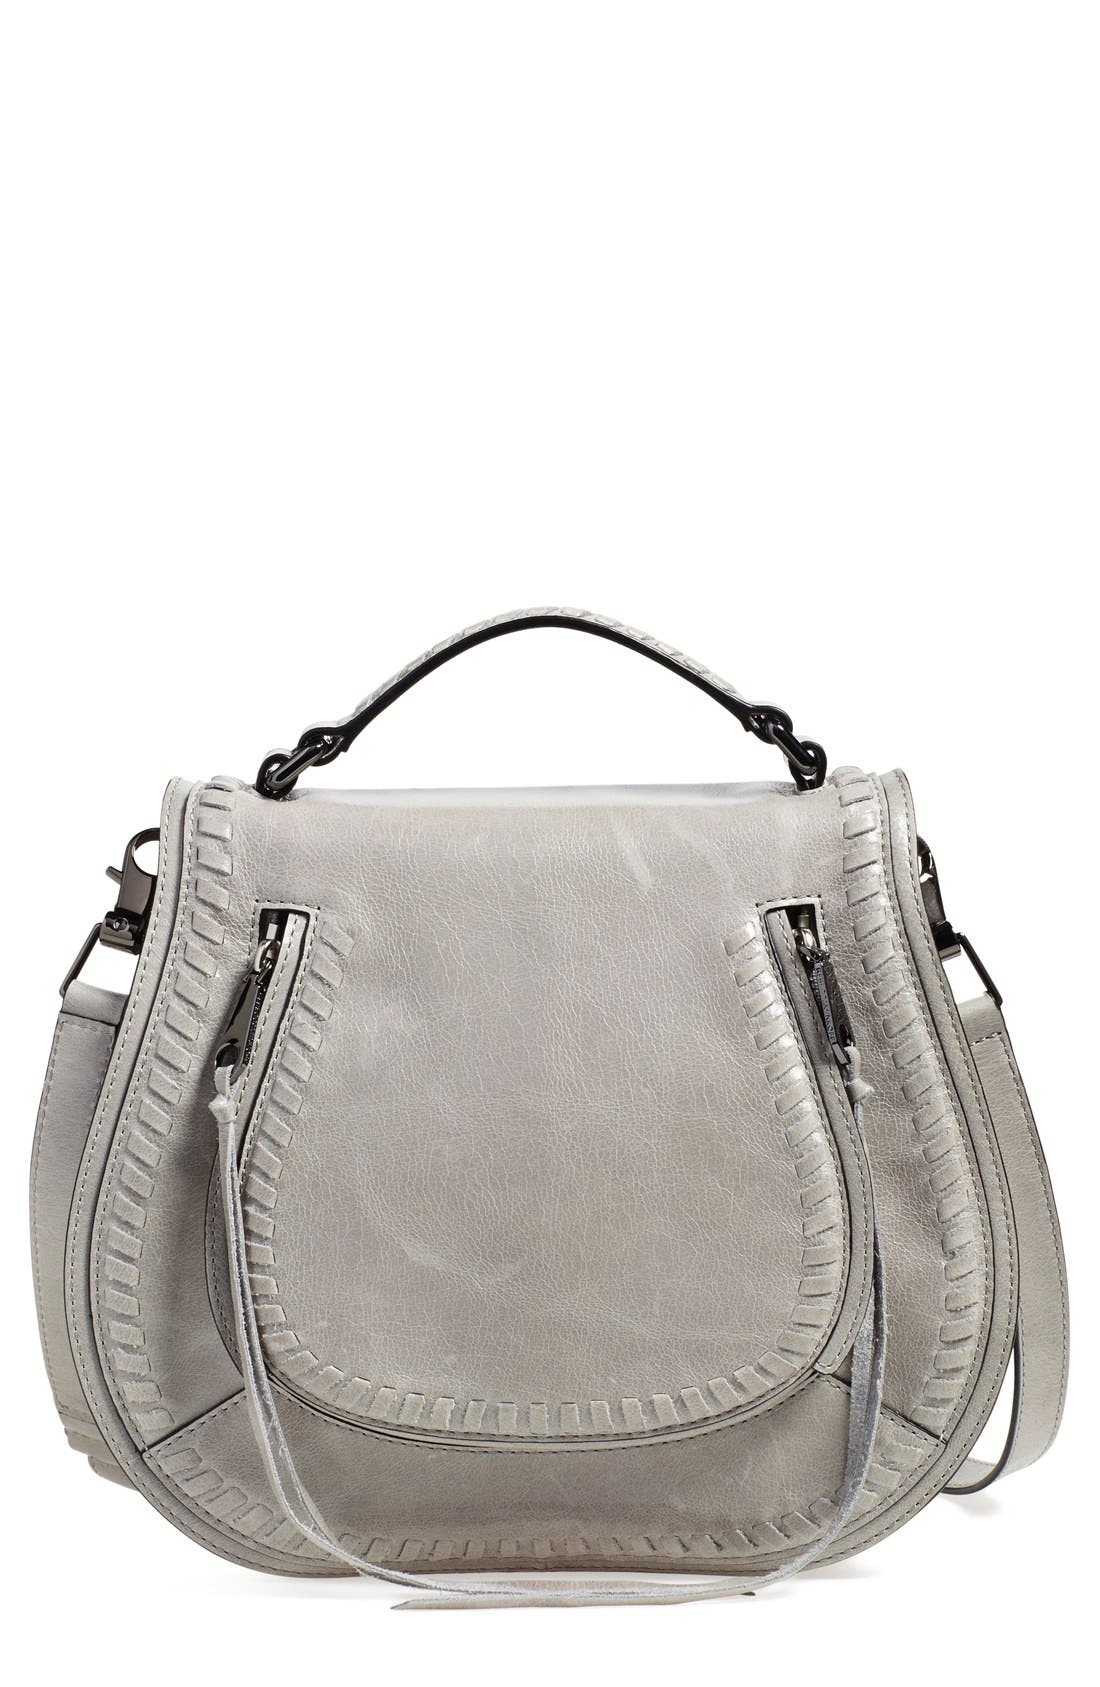 Vanity Saddle Bag,                         Main,                         color, Cemento/ Silver Hrdwr